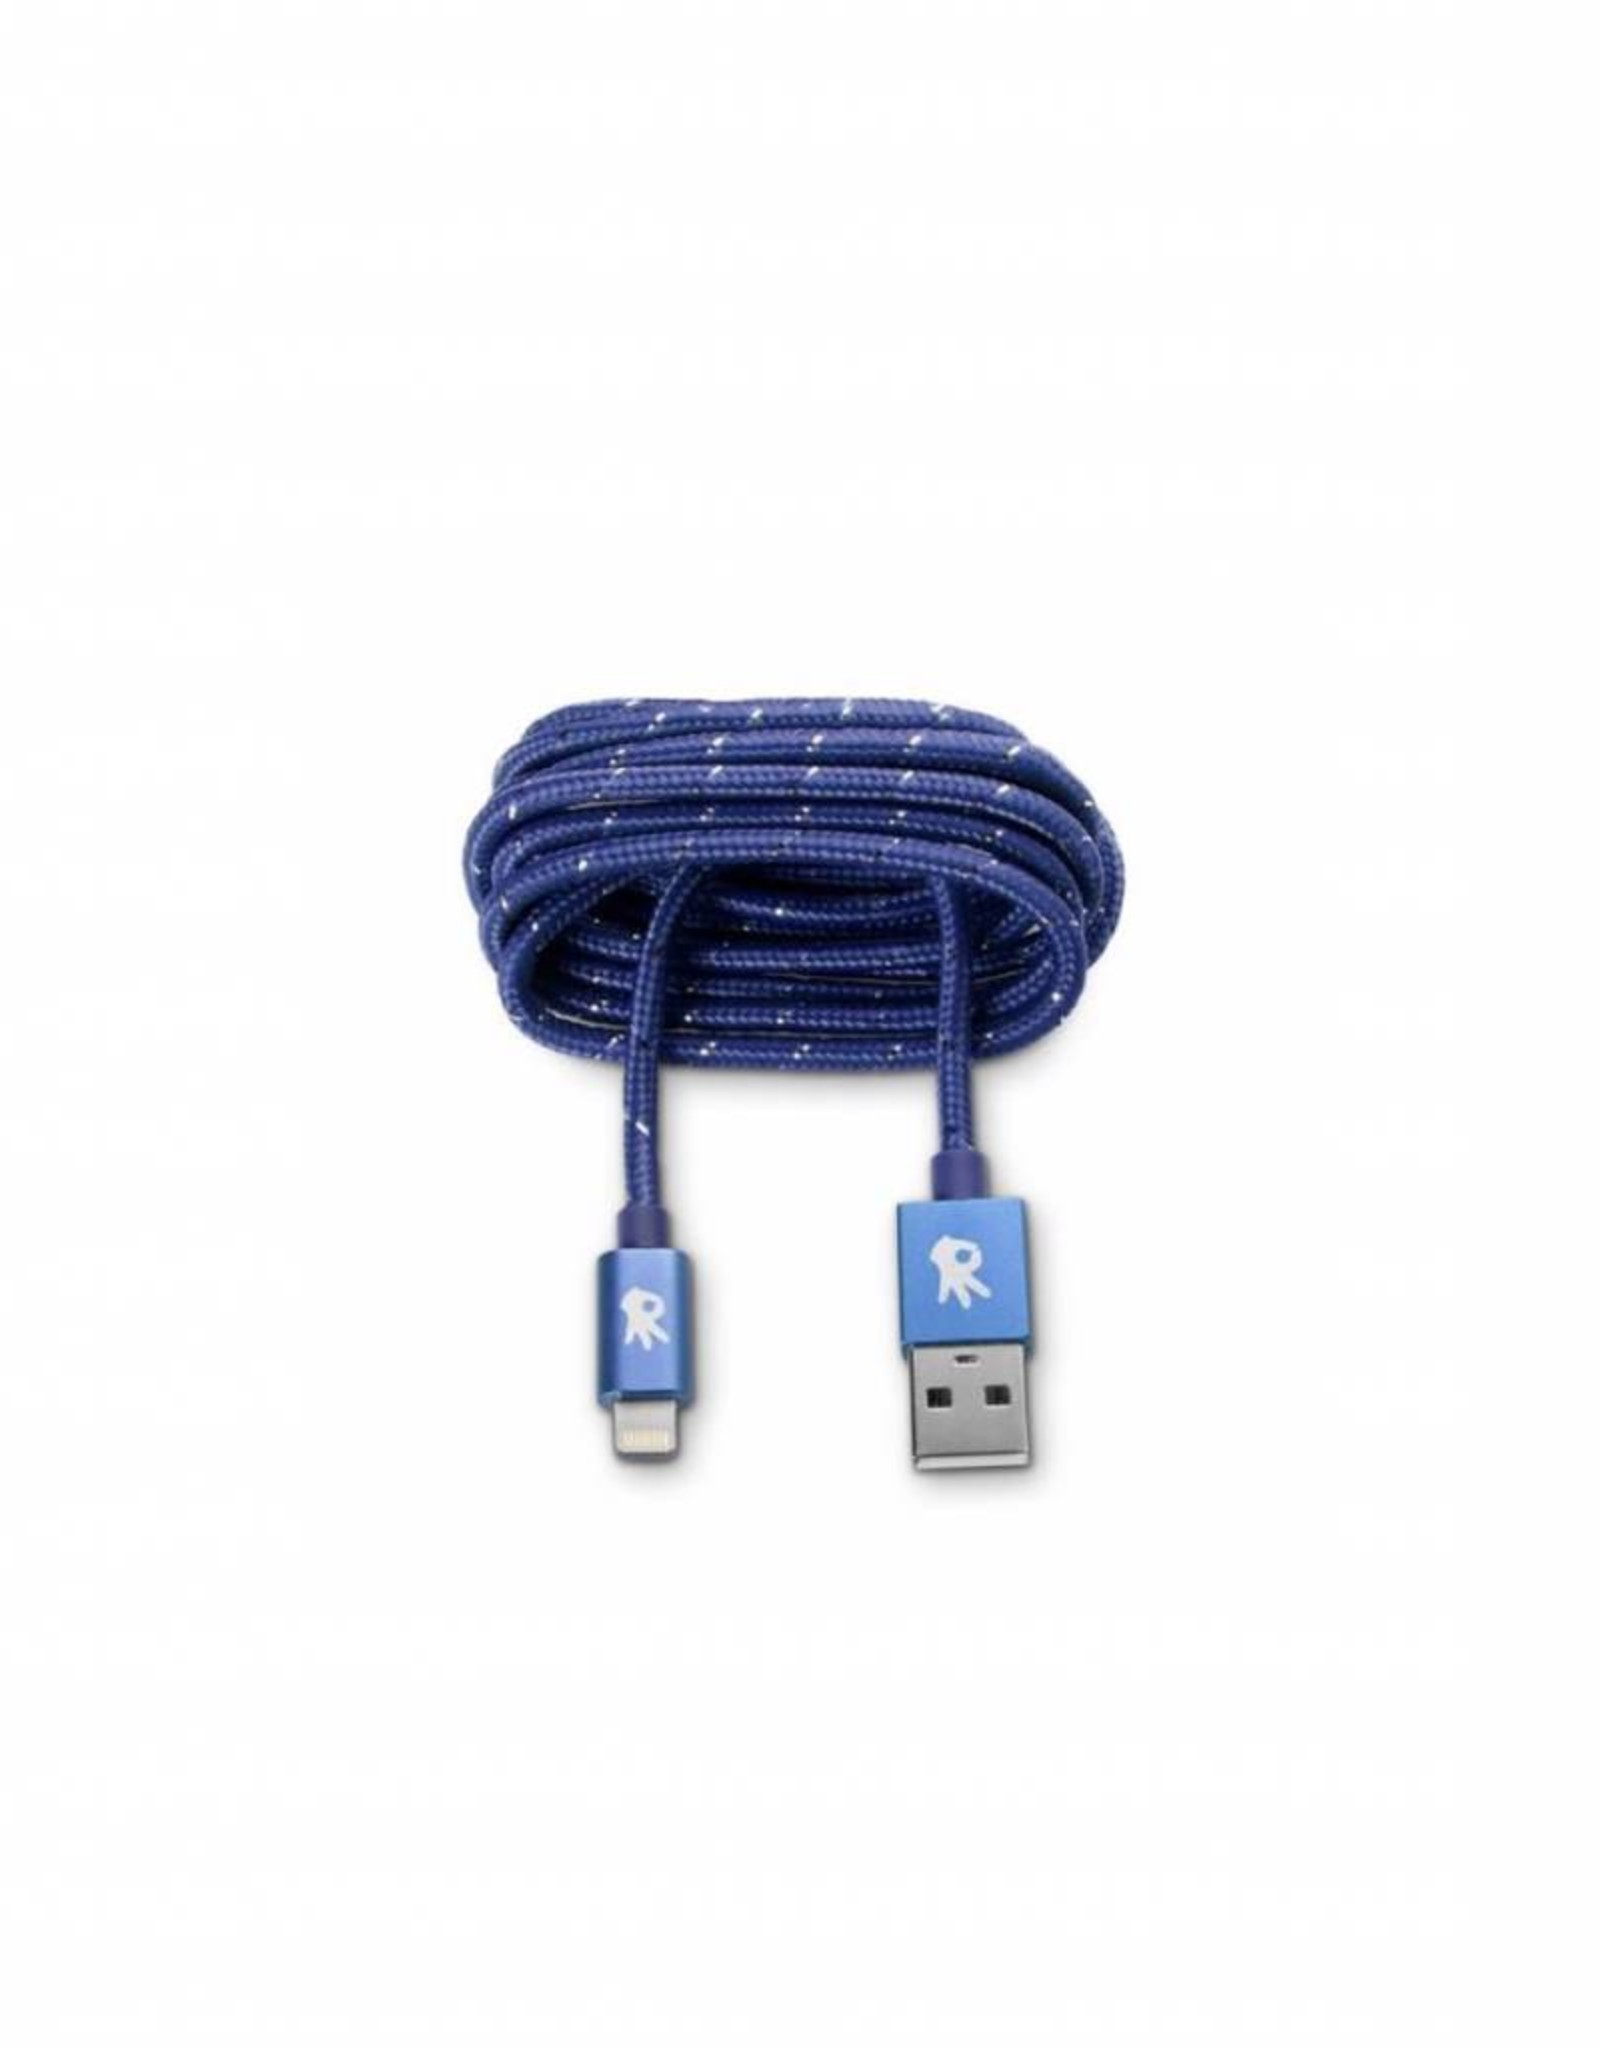 ONHAND ONHAND EVERLASTING LIGHTNING TO USB CABLE (5')